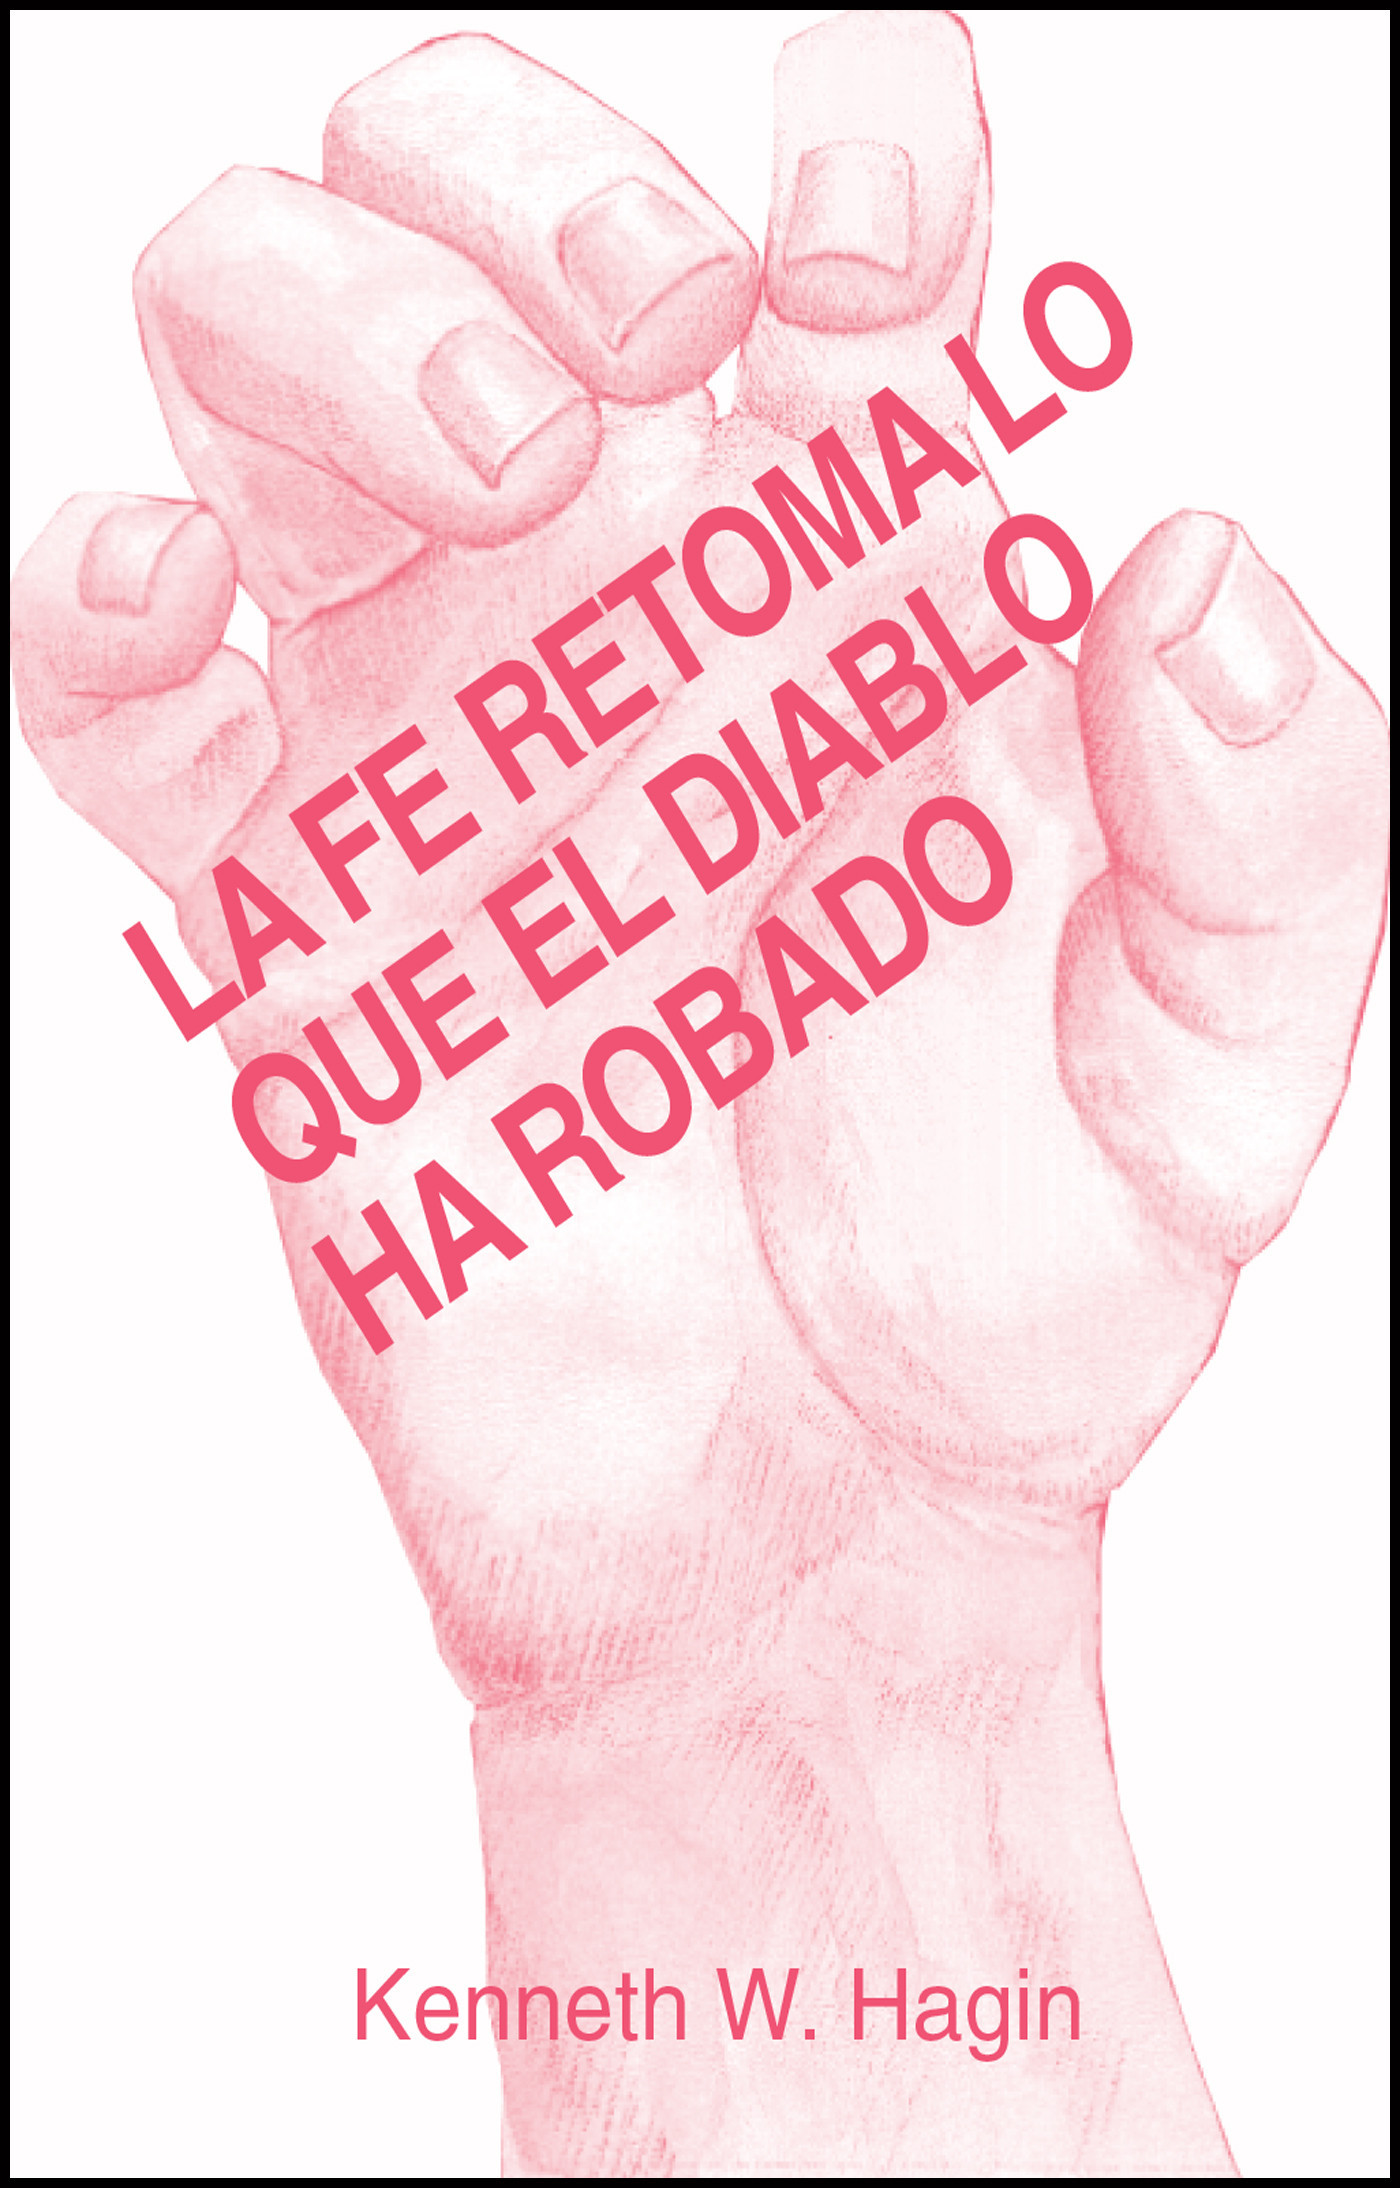 La Fe Retoma lo Que El Diablo ha Robado (Faith Takes Back What the Devil's Stolen - Book)